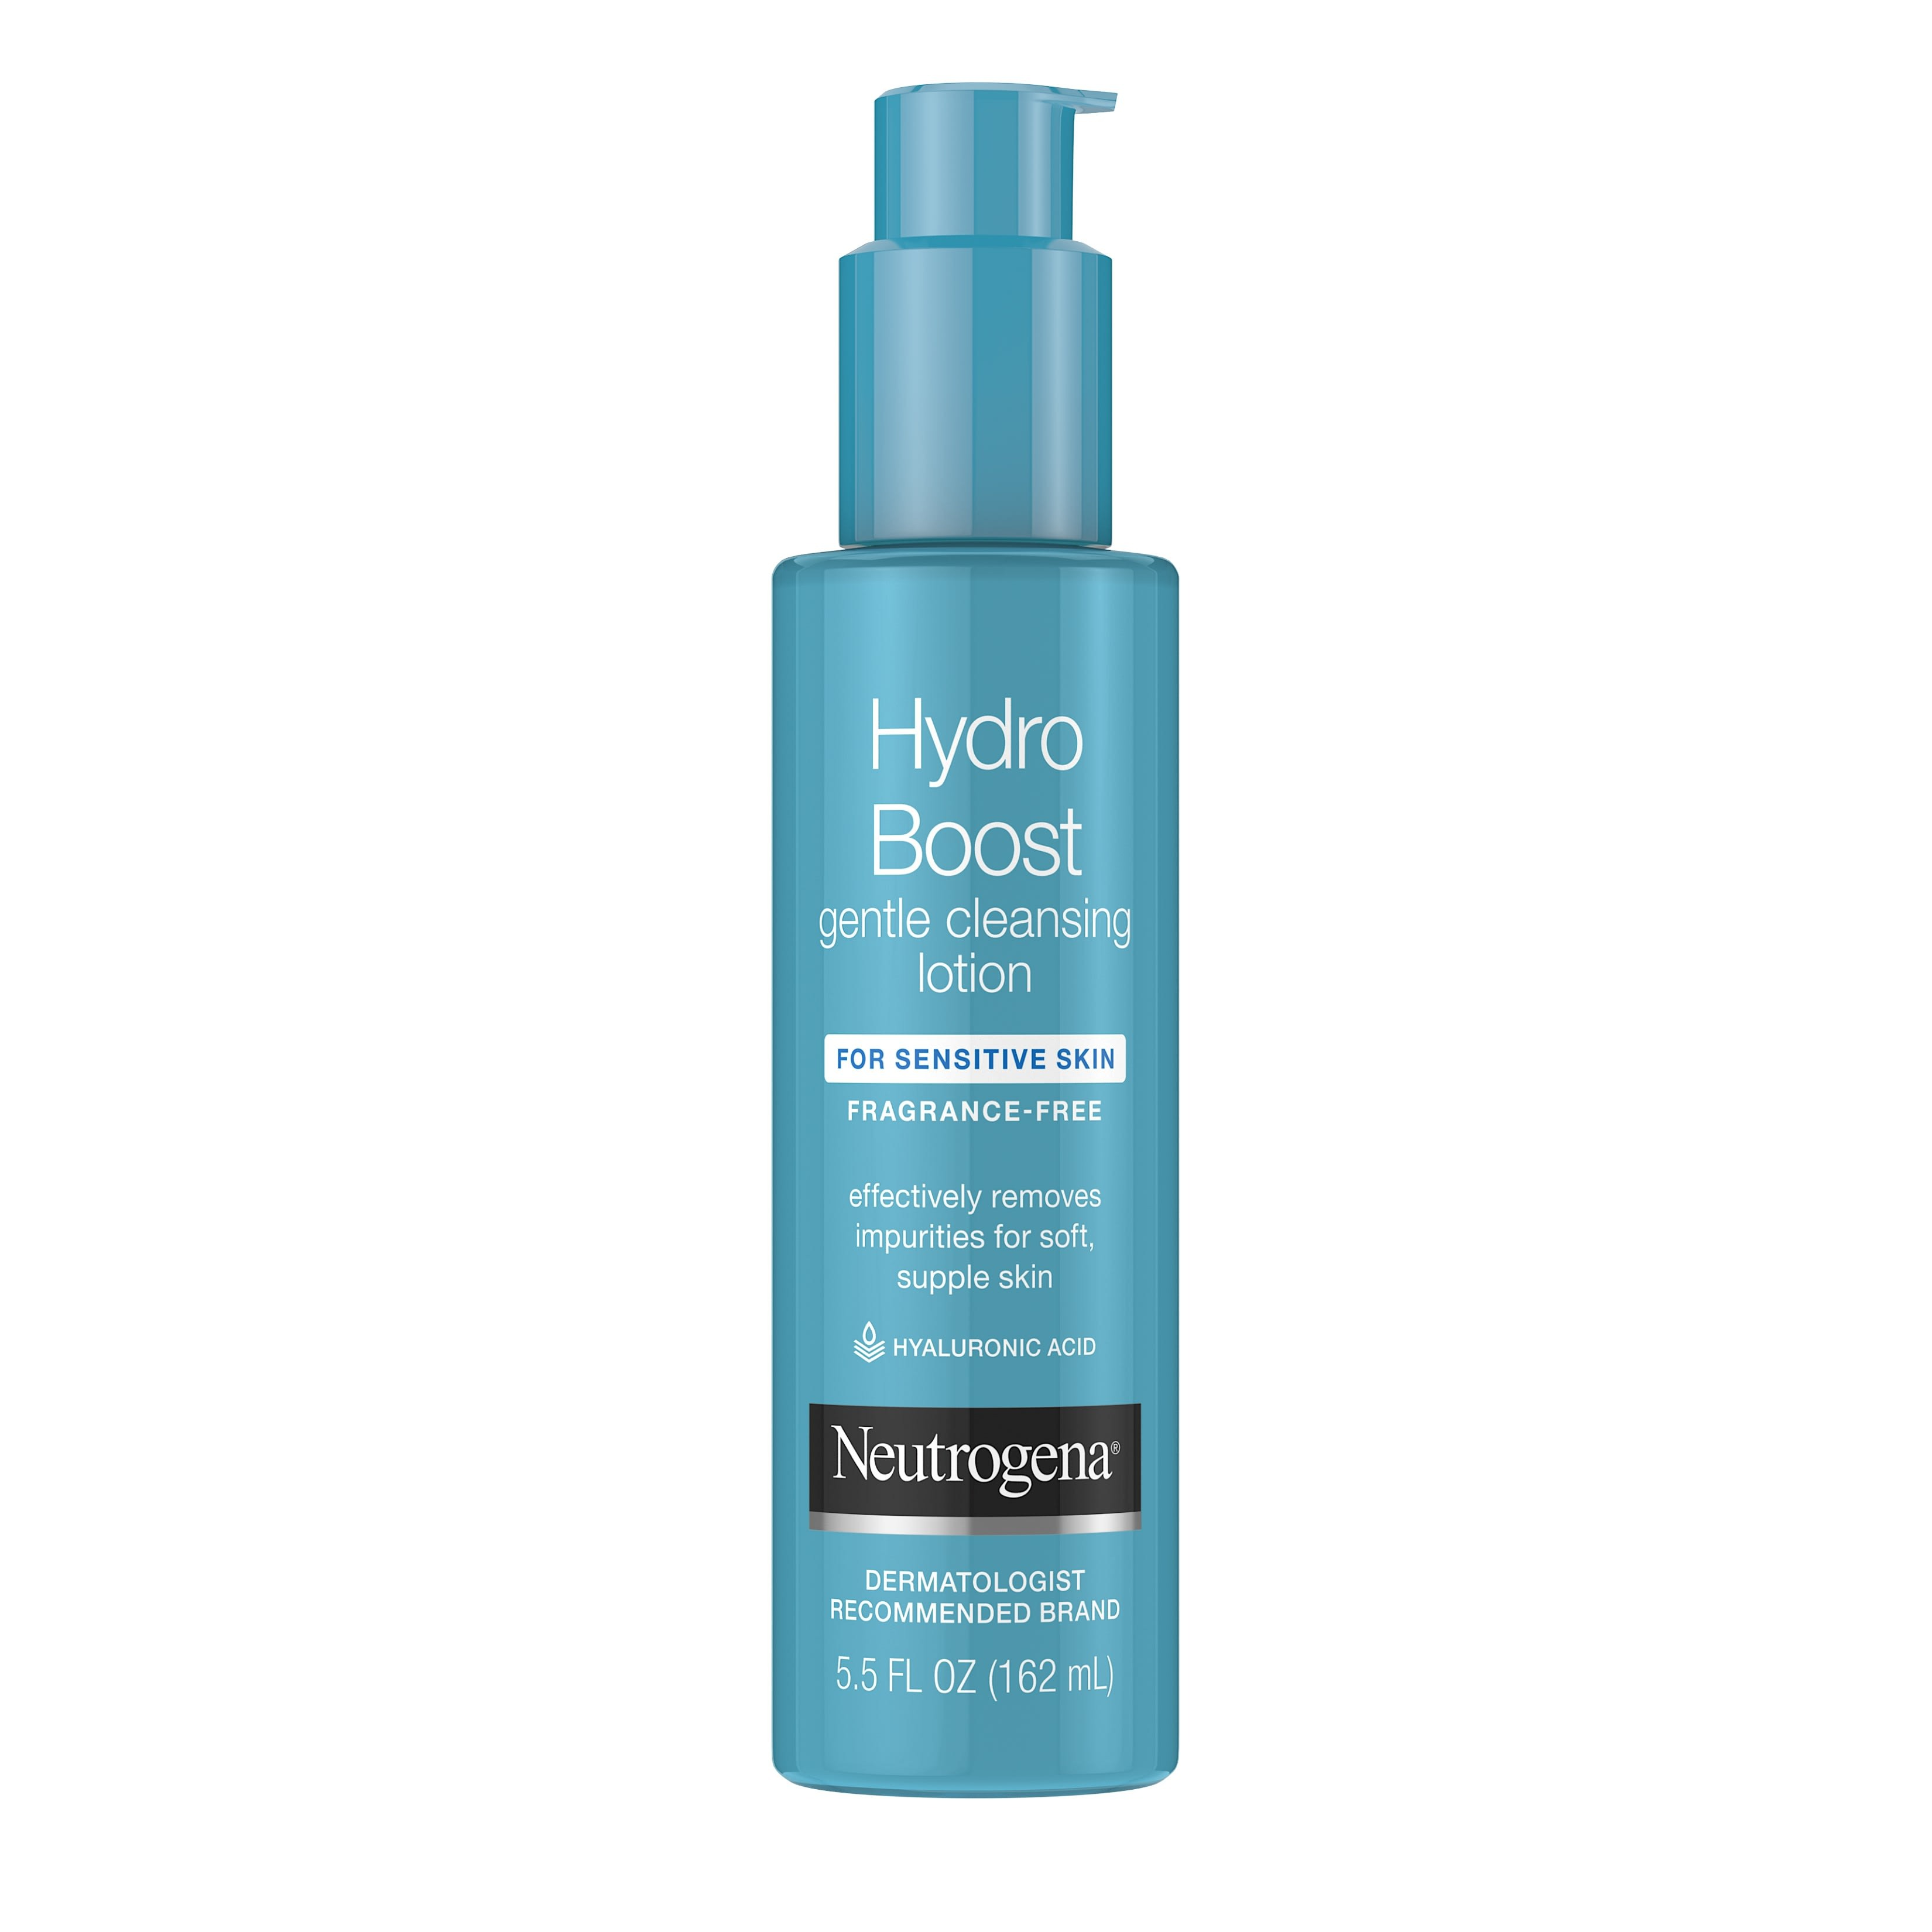 SỮA TẨY TRANG NEUTROGENA HYDRO BOOST GENTLE CLEANSING AND HYDRATING FACE LOTION